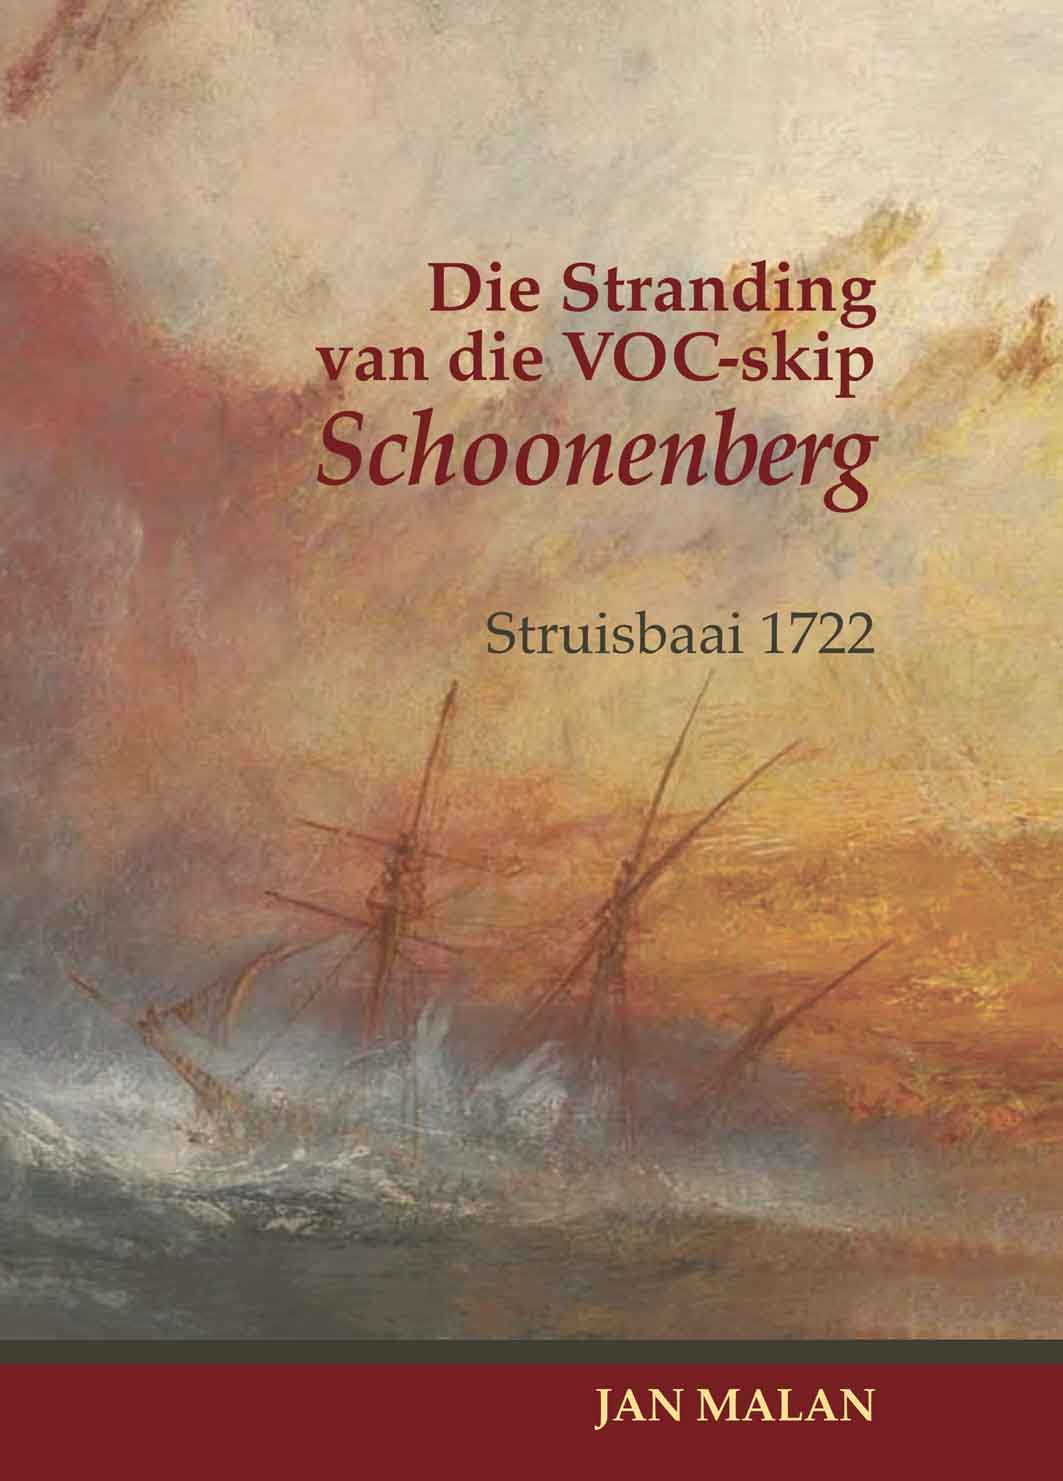 Book cover for Die Stranding van die VOC-skip Schoonenberg: Struisbaai 1722 by Jan Malan published by Africana Publishers